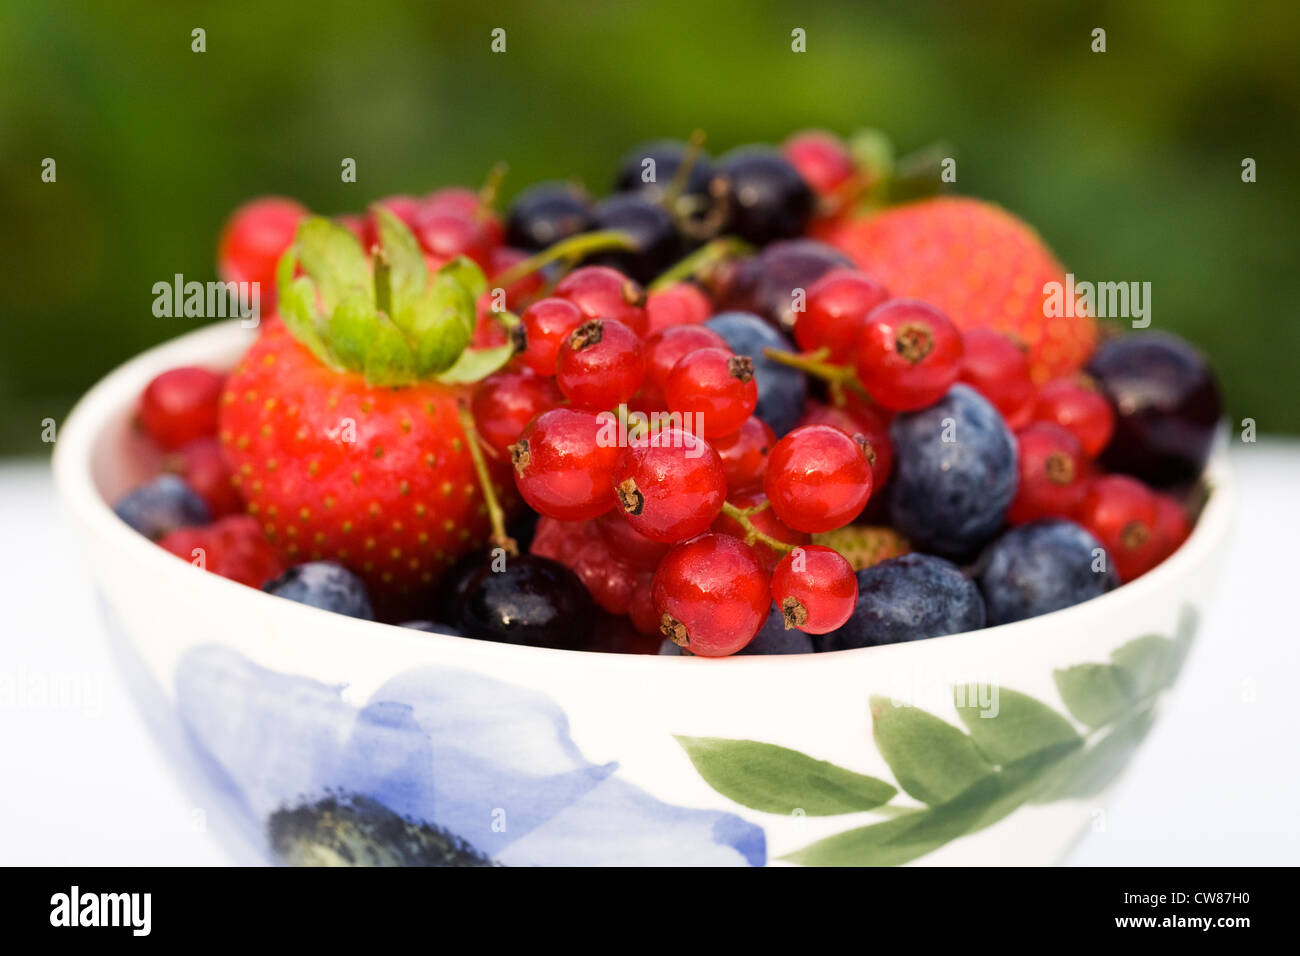 Colourful summer berries in a bowl. - Stock Image